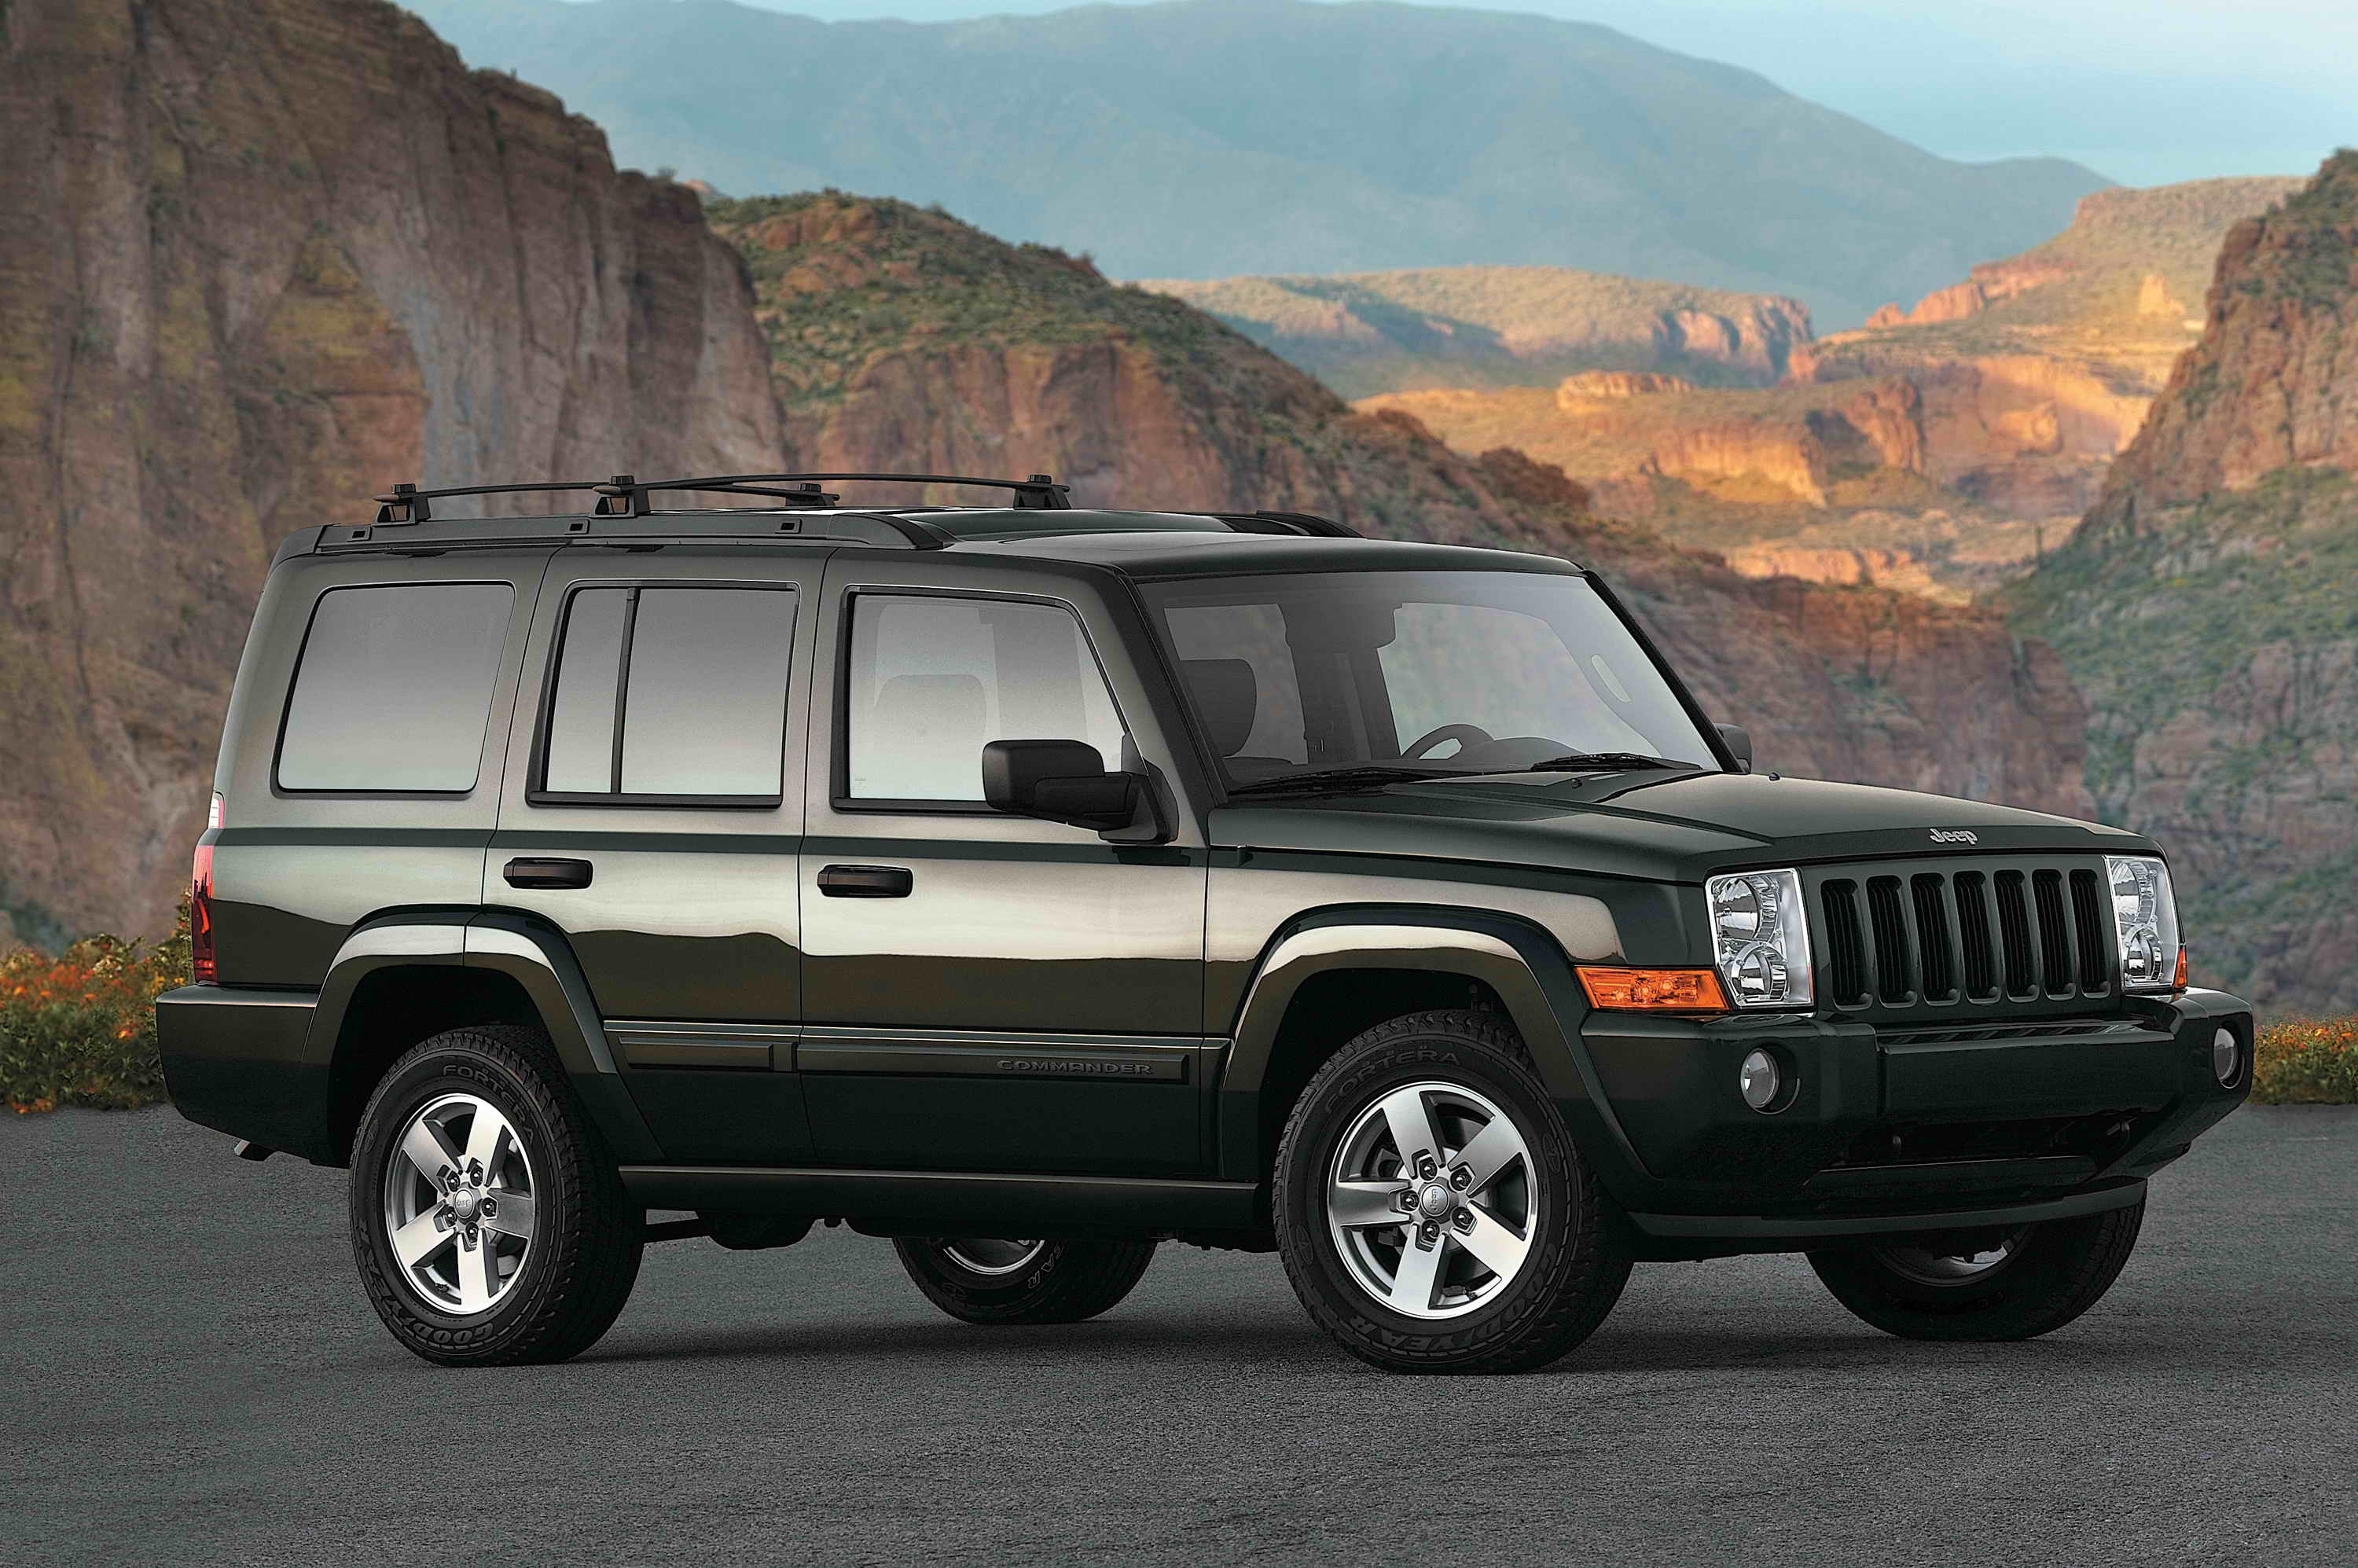 wrg 0526] 2006 jeep commander ground effects 2009 Jeep Commander 2006 Jeep Commander Ground Effects #5